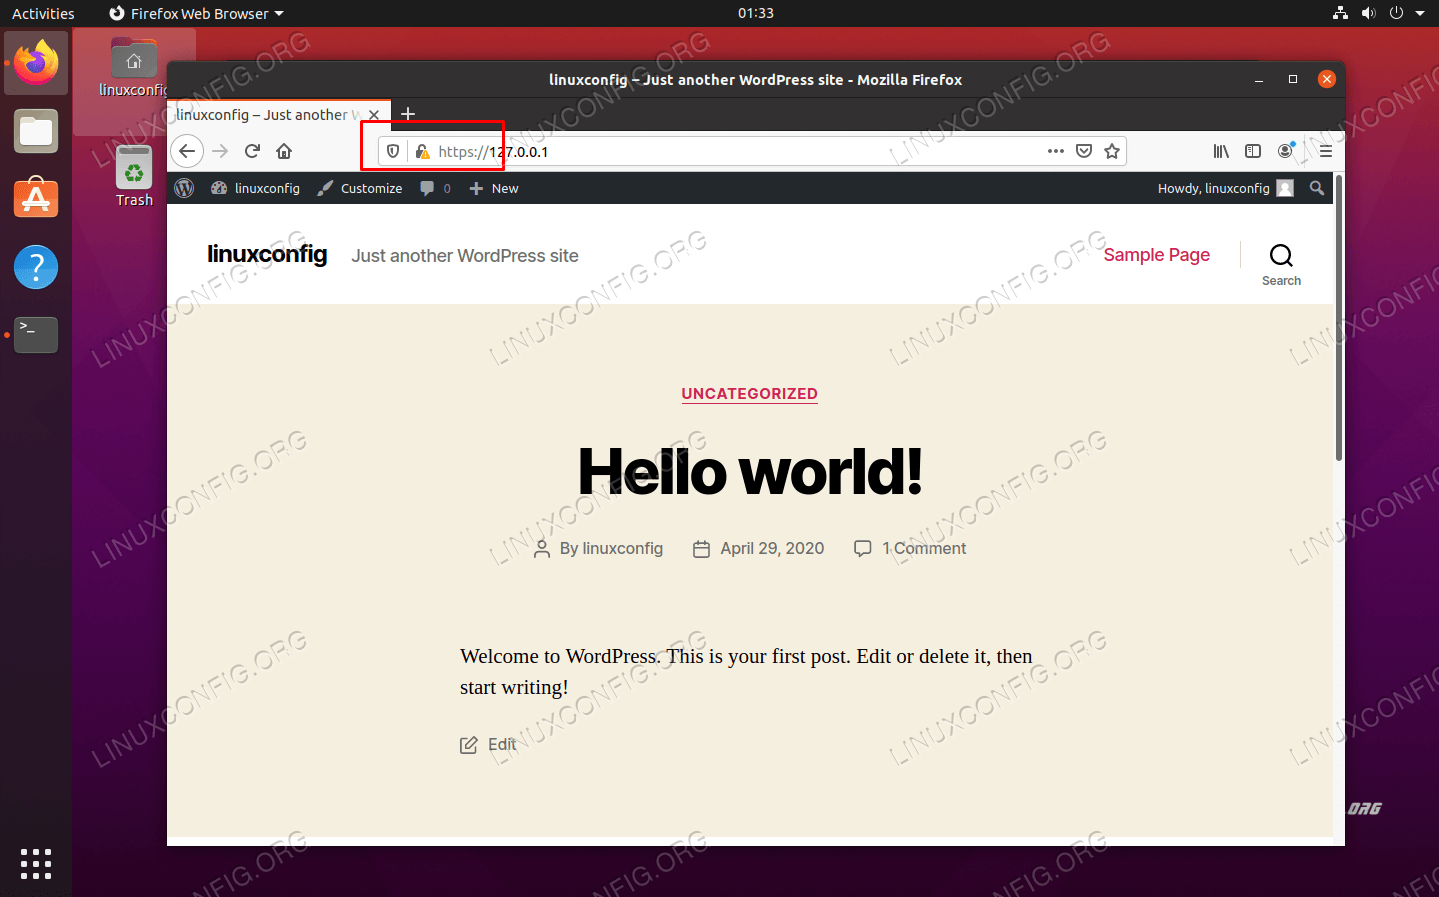 HTTPS is now enabled on our WordPress site